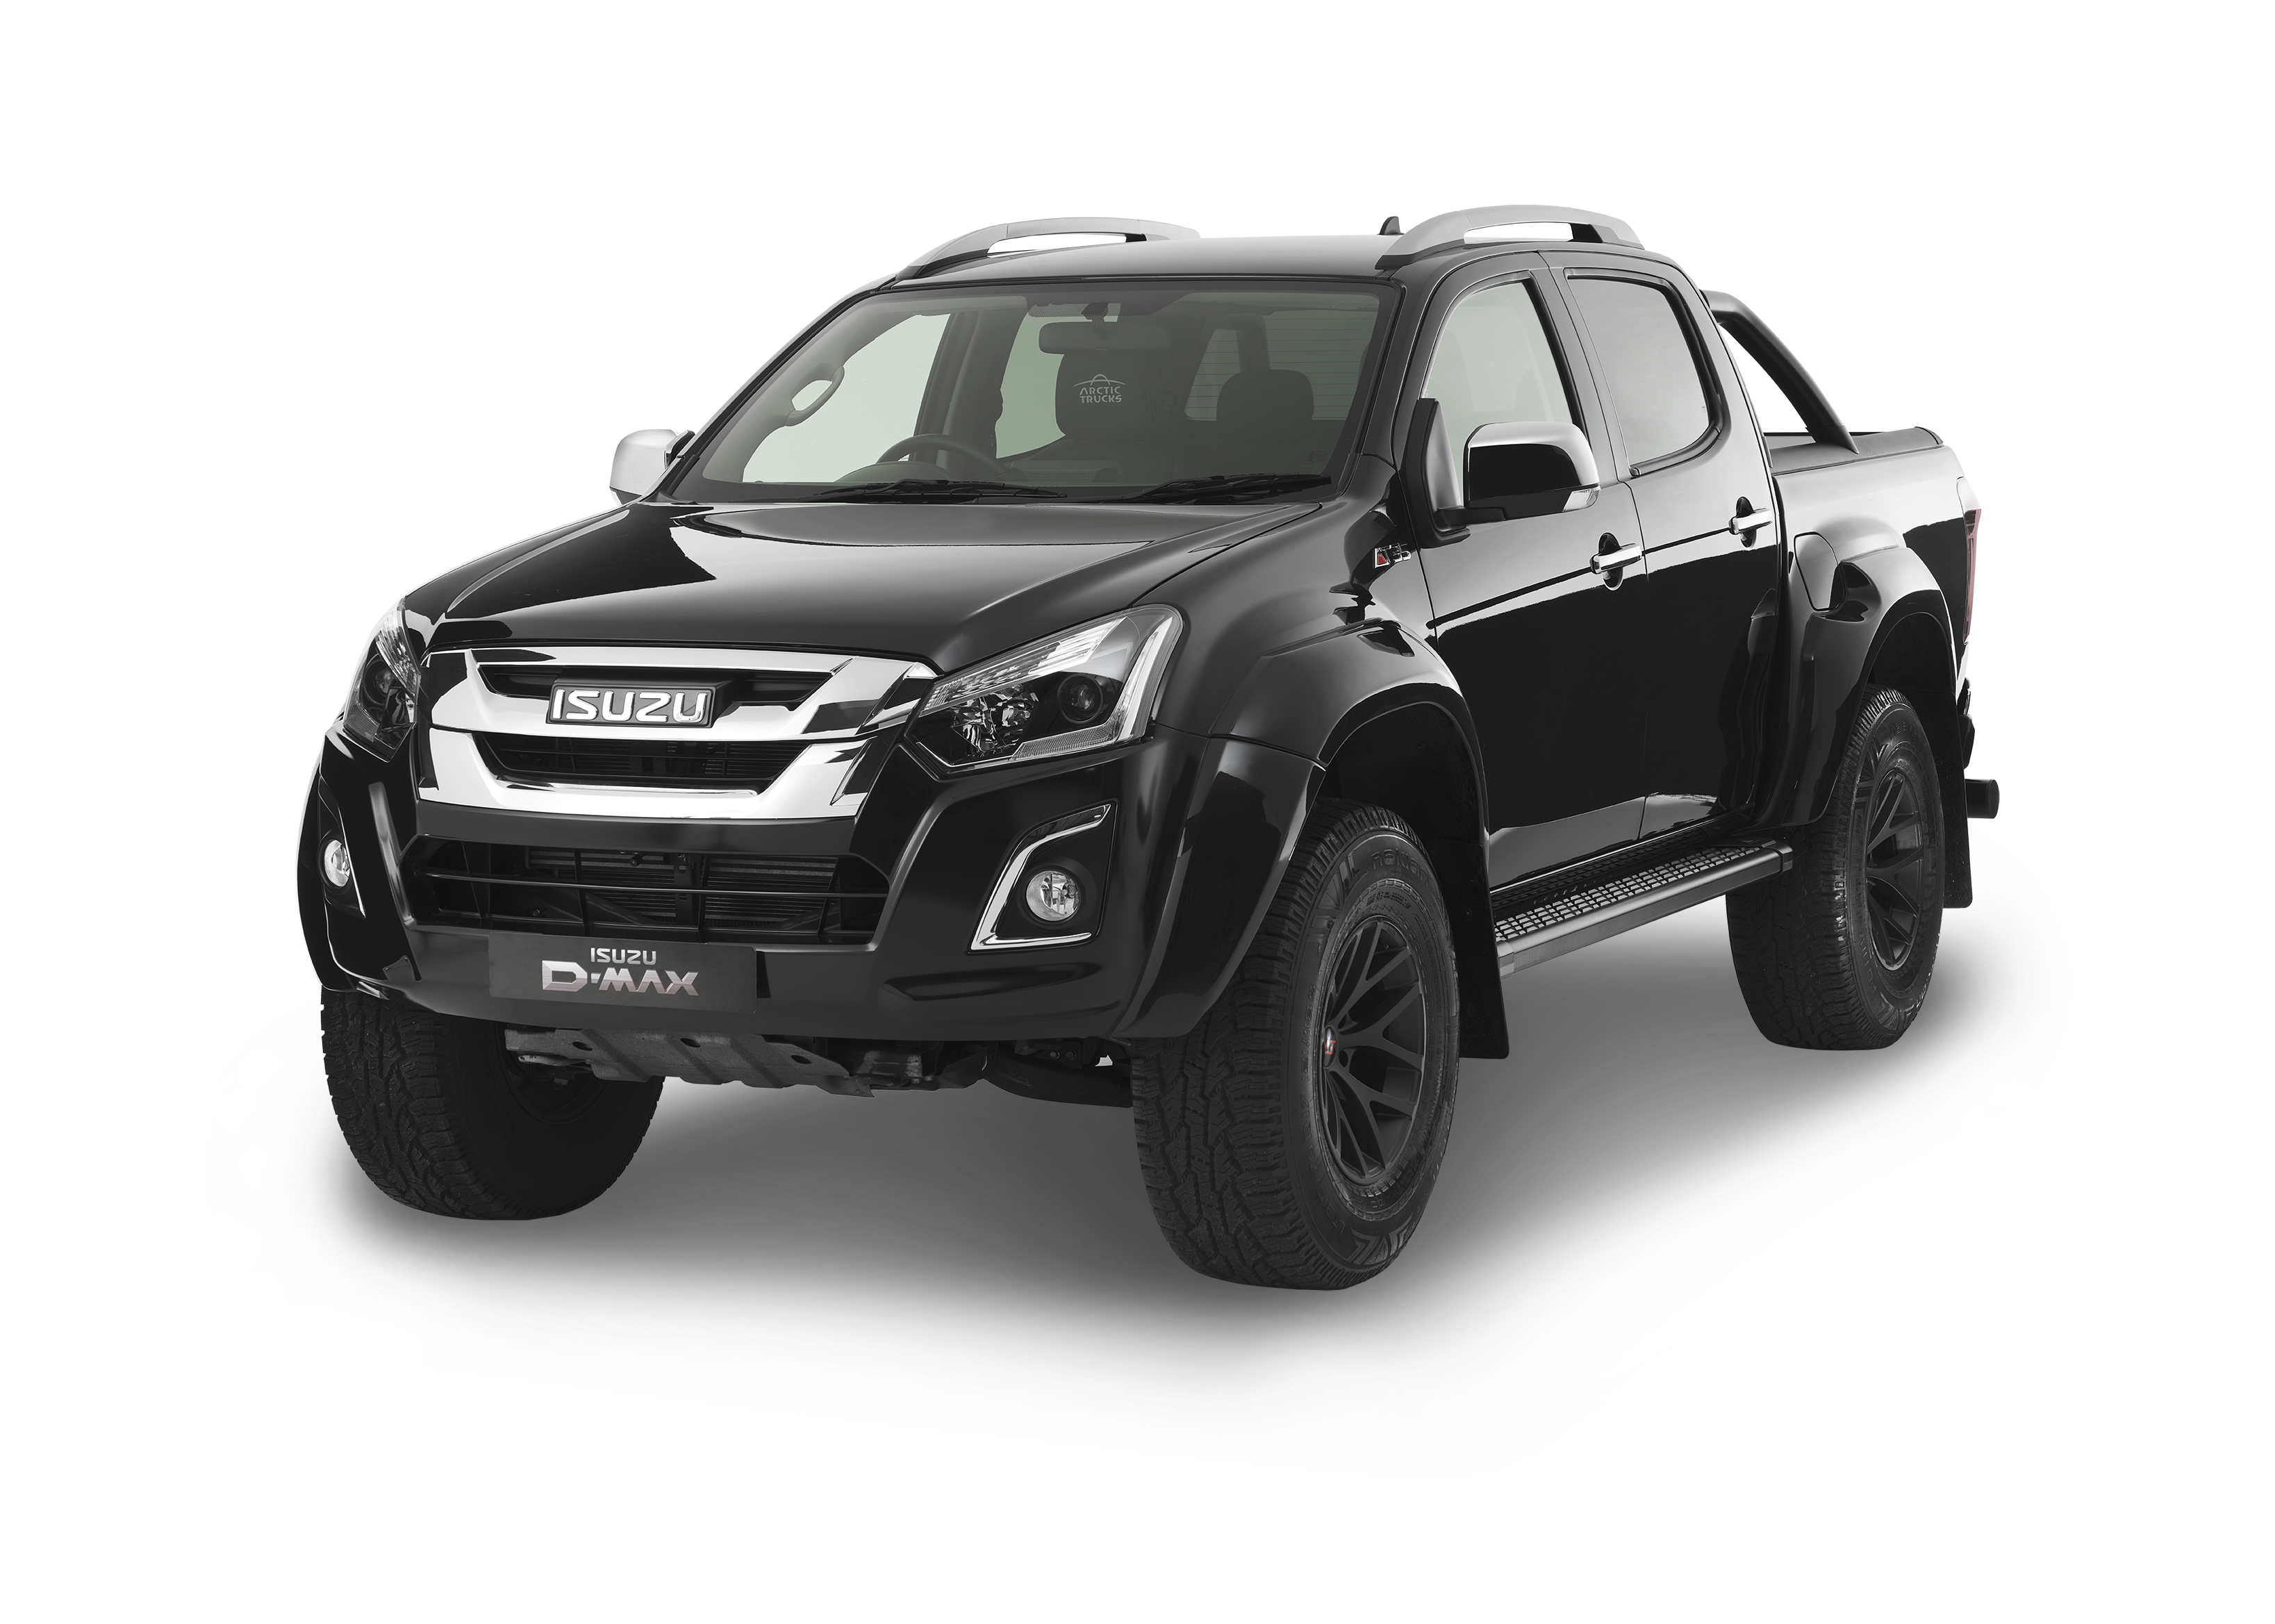 Front view of the Isuzu D-Max Arctic AT35 in cosmic black